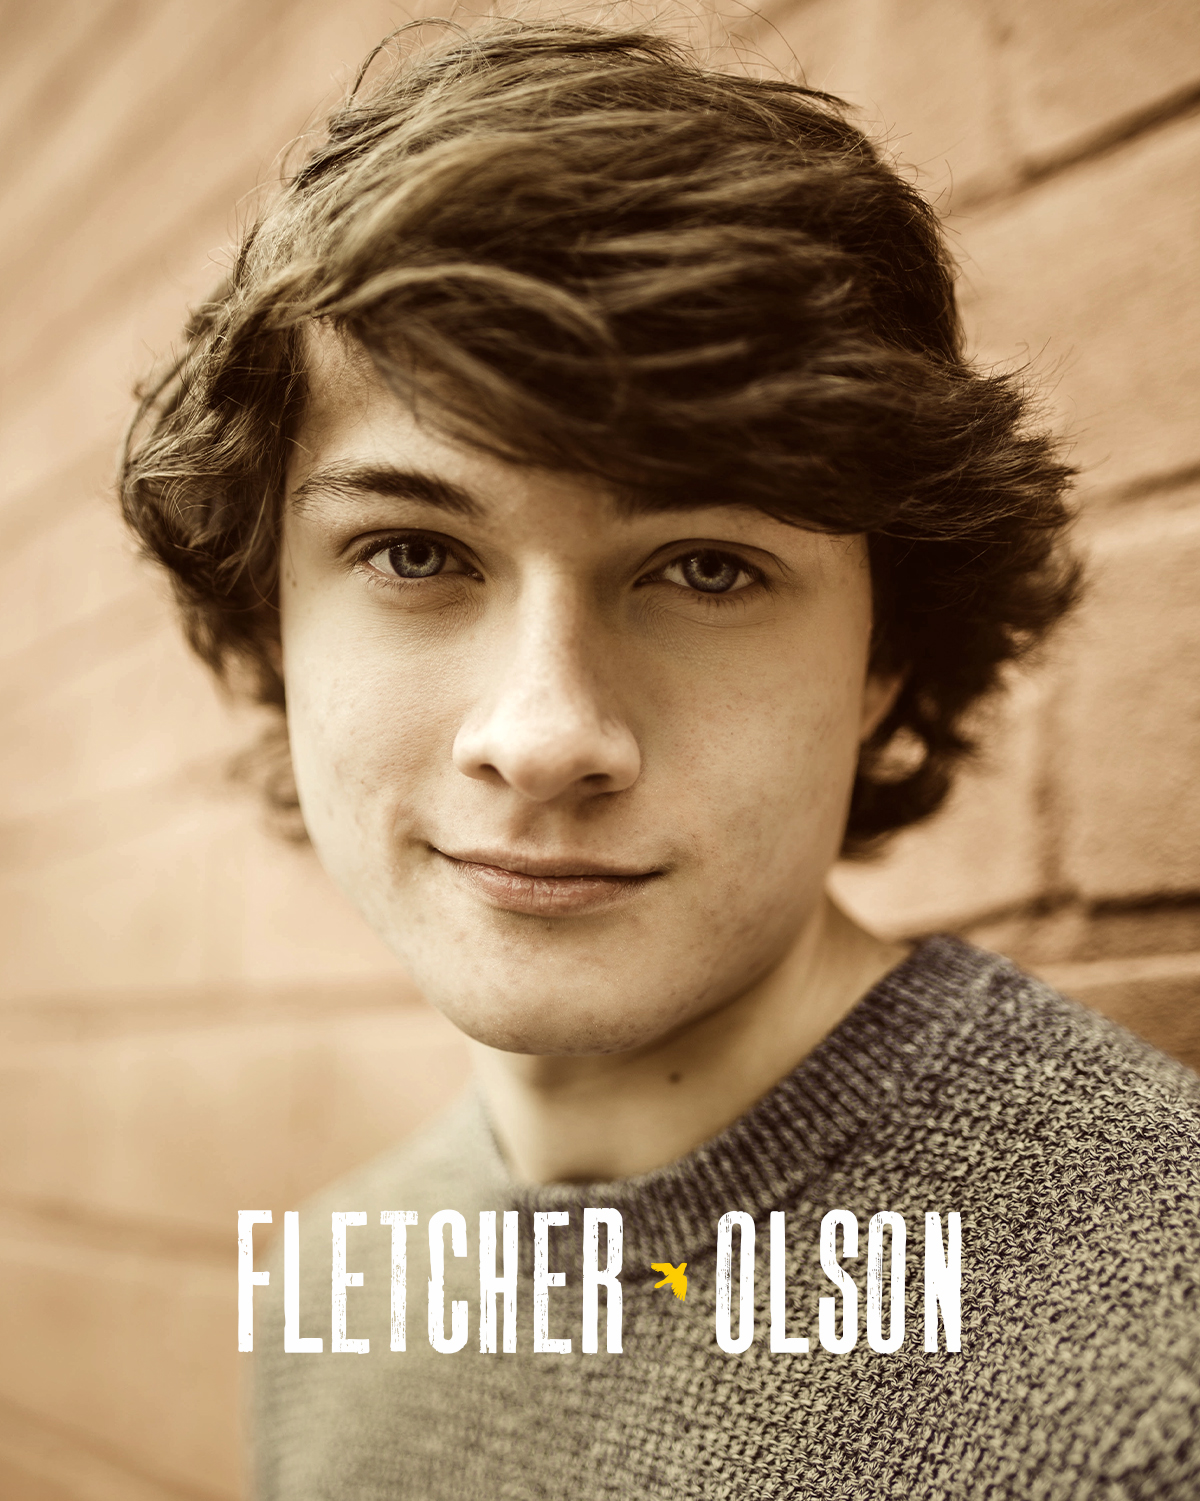 FLETCHER OLSON  (Ensemble) is a Senior BFA Acting Major at West Virginia University and is so excited to be a part of his first ever West Virginia Public Theatre show! WVU credits include:  You Can't Take It With You ,  The Magic Flute , and  The Three Musketeers . Fletcher would like to thank the producers and director of  Storming Heaven: The Musical  for allowing him to be a part of such an amazing and ambitious project, as well as his friends and family who have encouraged him and stuck by his side over all these years. Enjoy the show!